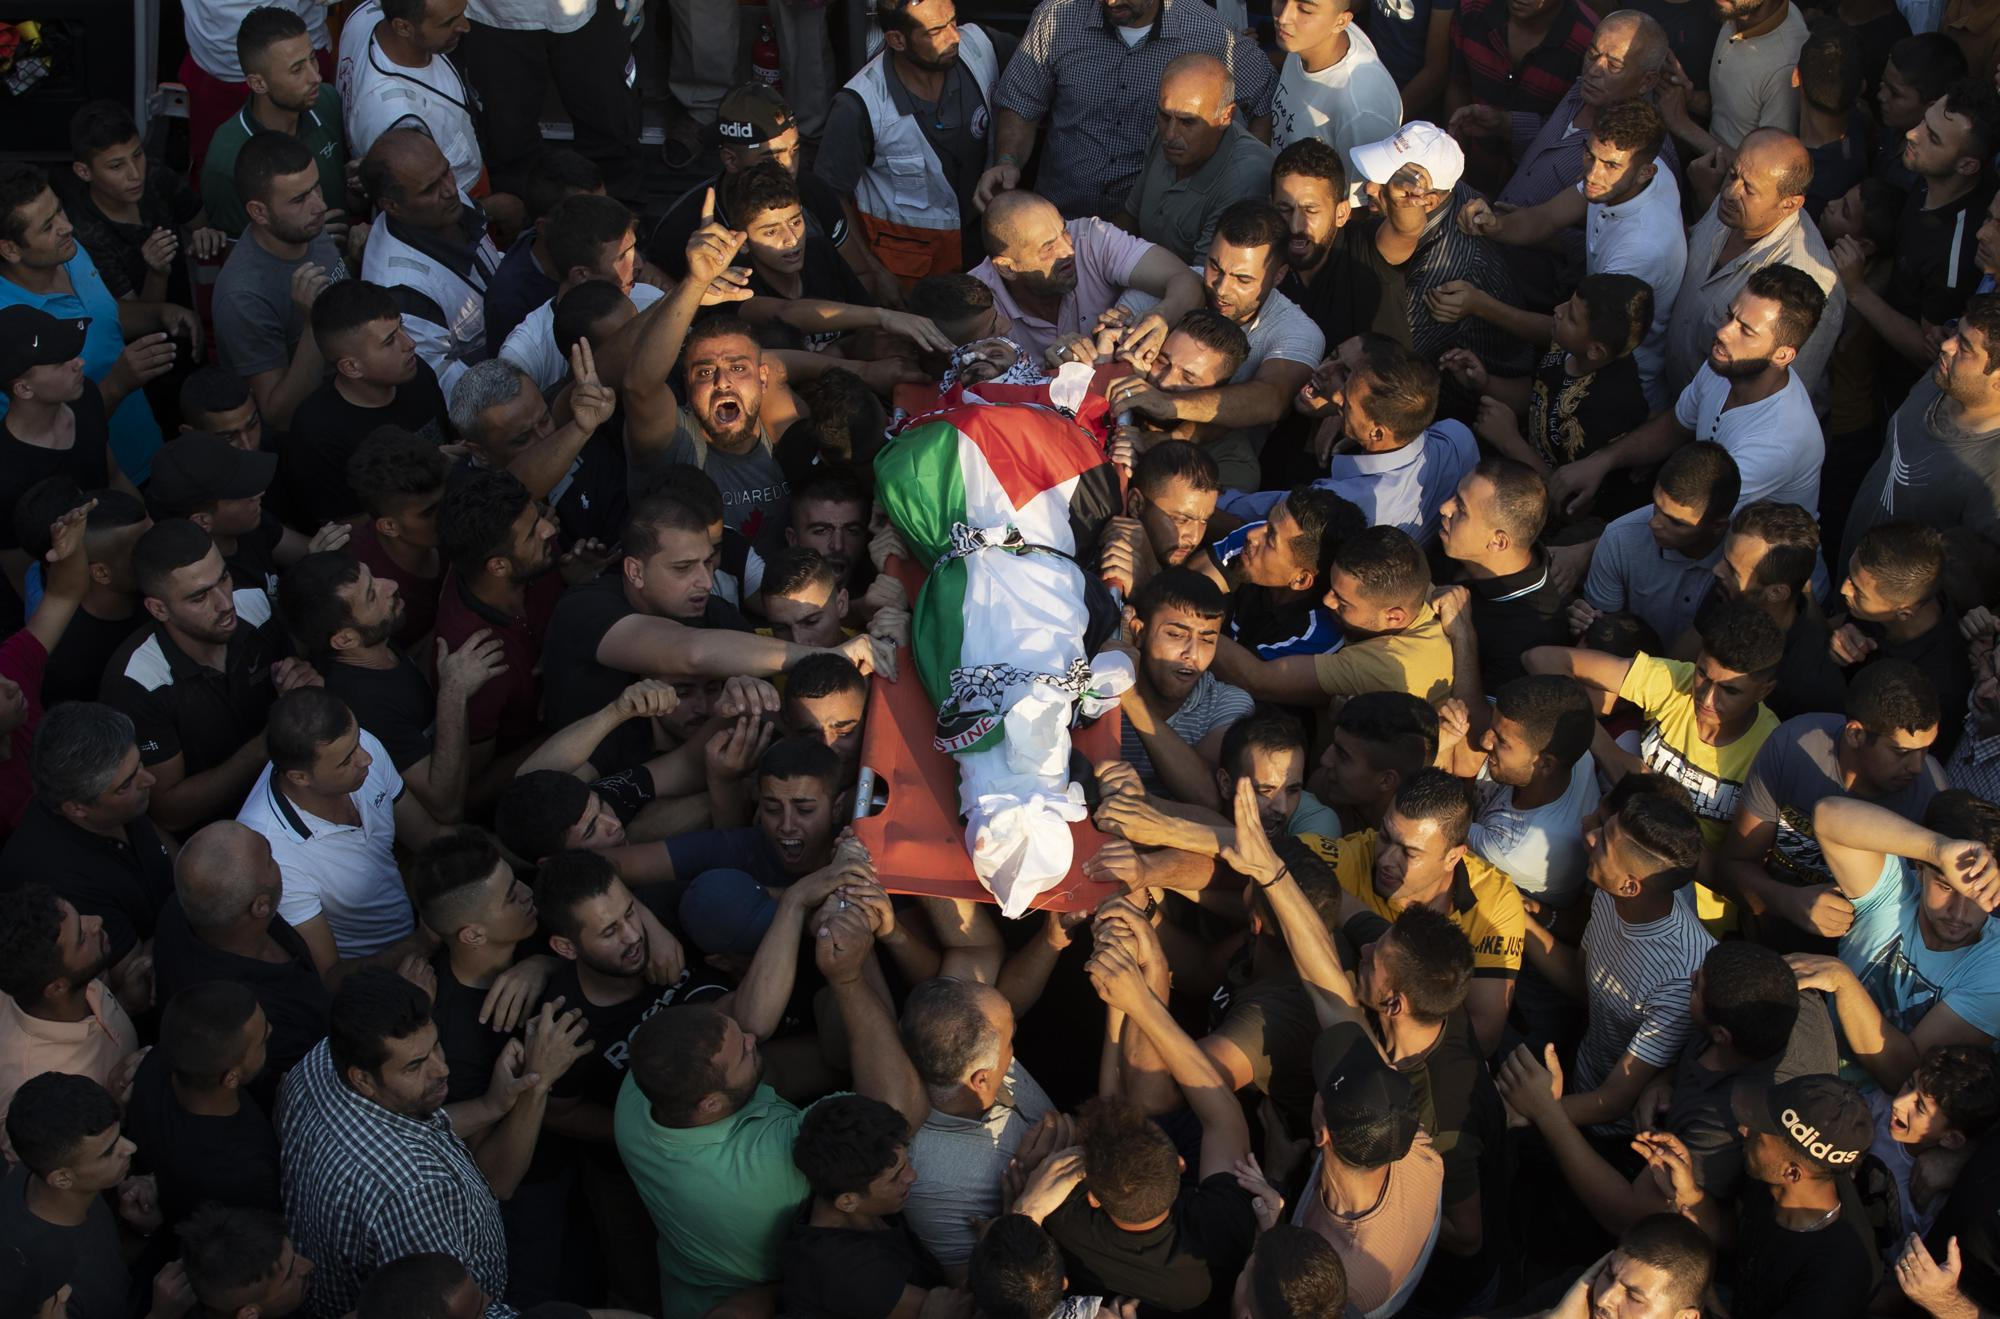 Palestinians carry the body of Imad Dwekat, 37, during his funeral in the village of Beita, south of the West Bank city of Nablus, Friday, Aug. 6, 2021. Dwekat was killed during clashes with Israeli security forces following a protest in the West Bank on Friday. (AP Photo/Majdi Mohammed)